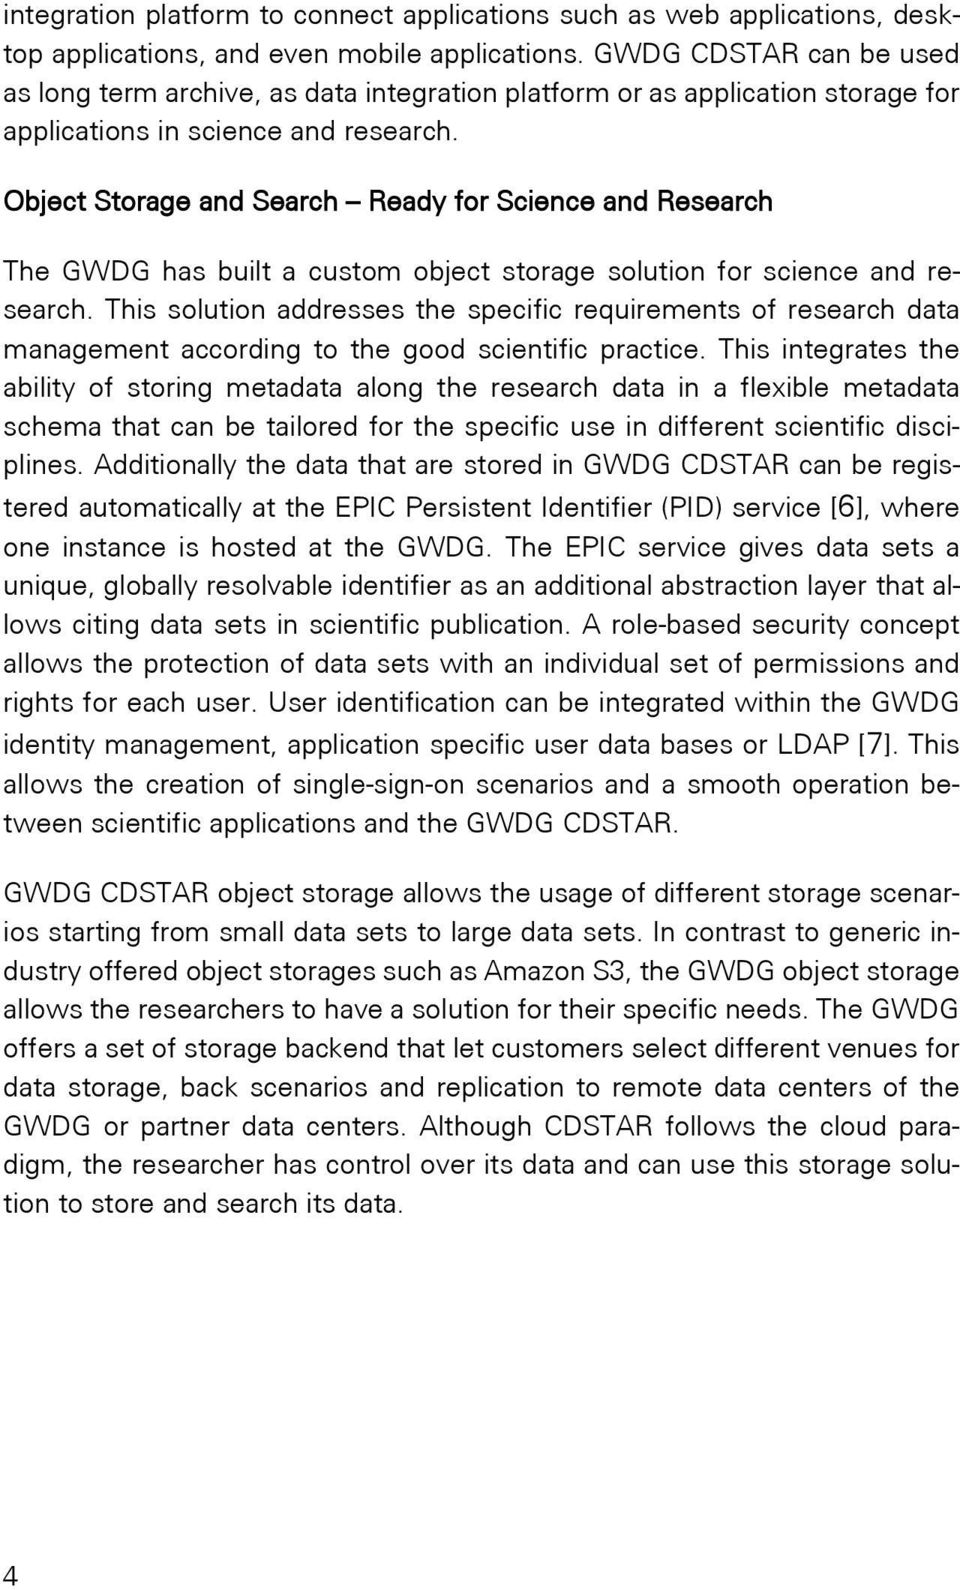 Object Storage and Search Ready for Science and Research The GWDG has built a custom object storage solution for science and research.